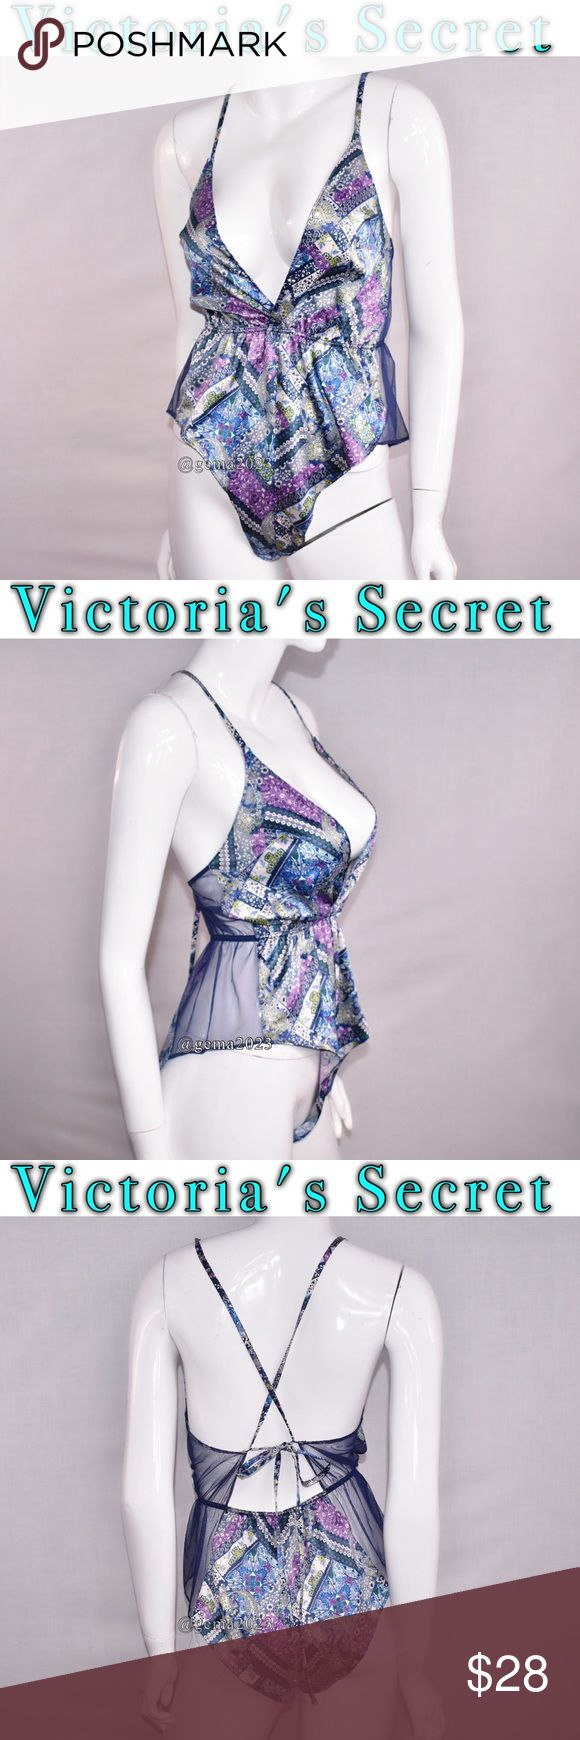 Victoria's Secret lingerie M Sleep Romper New with tag Sexy satin with mesh Adjustable straps Elastic waist all new with tag Sleep Romper Victoria's Secret Intimates & Sleepwear